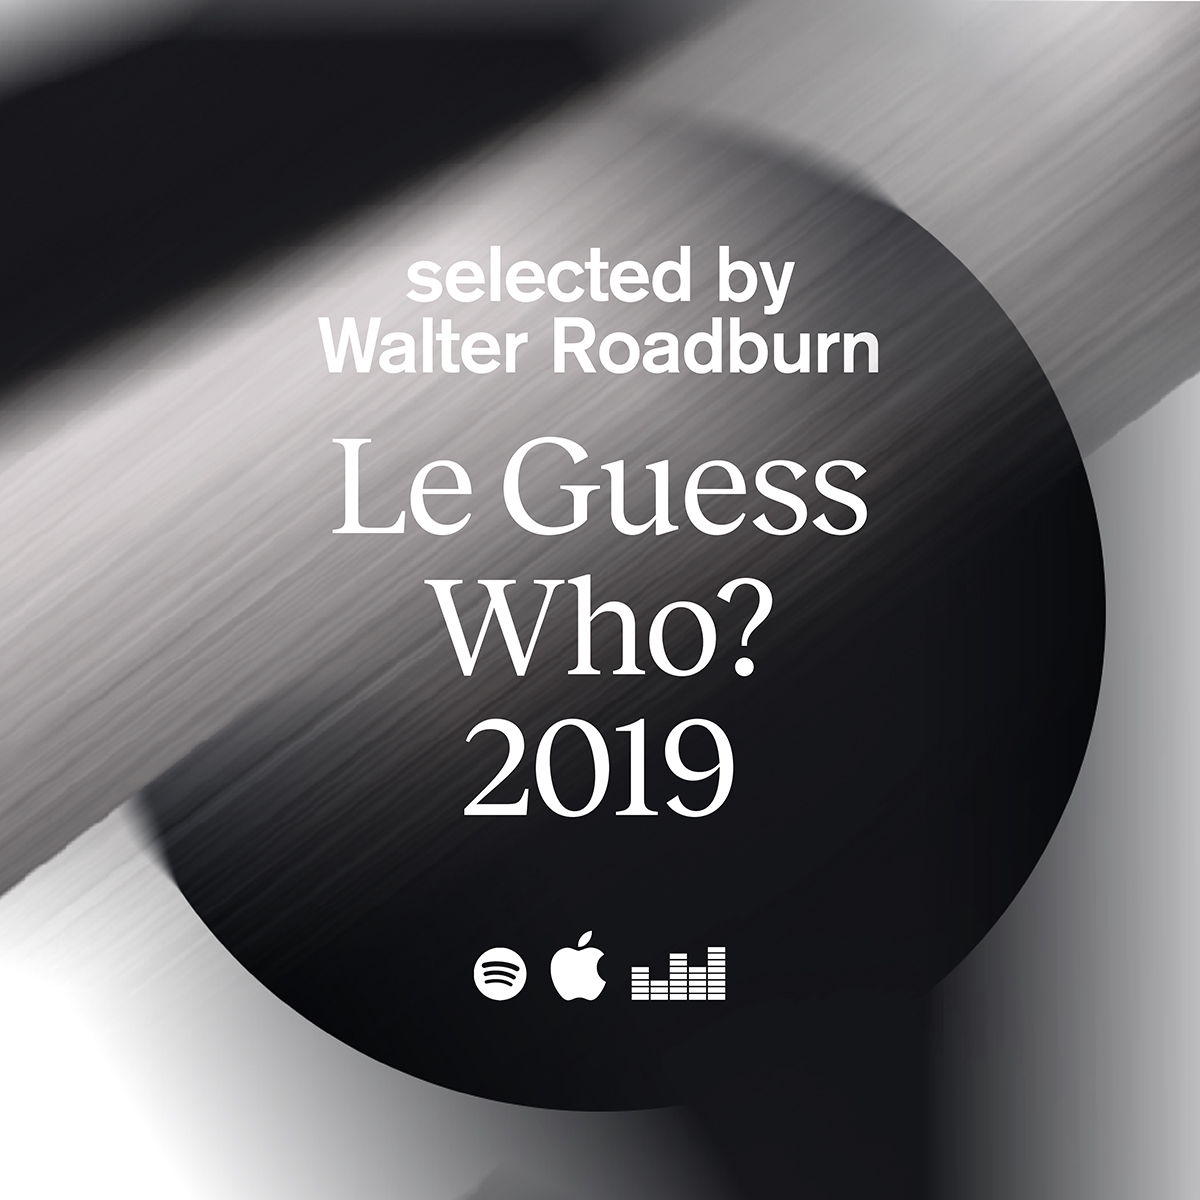 Playlist: Le Guess Who? 2019 selected by Walter Roadburn